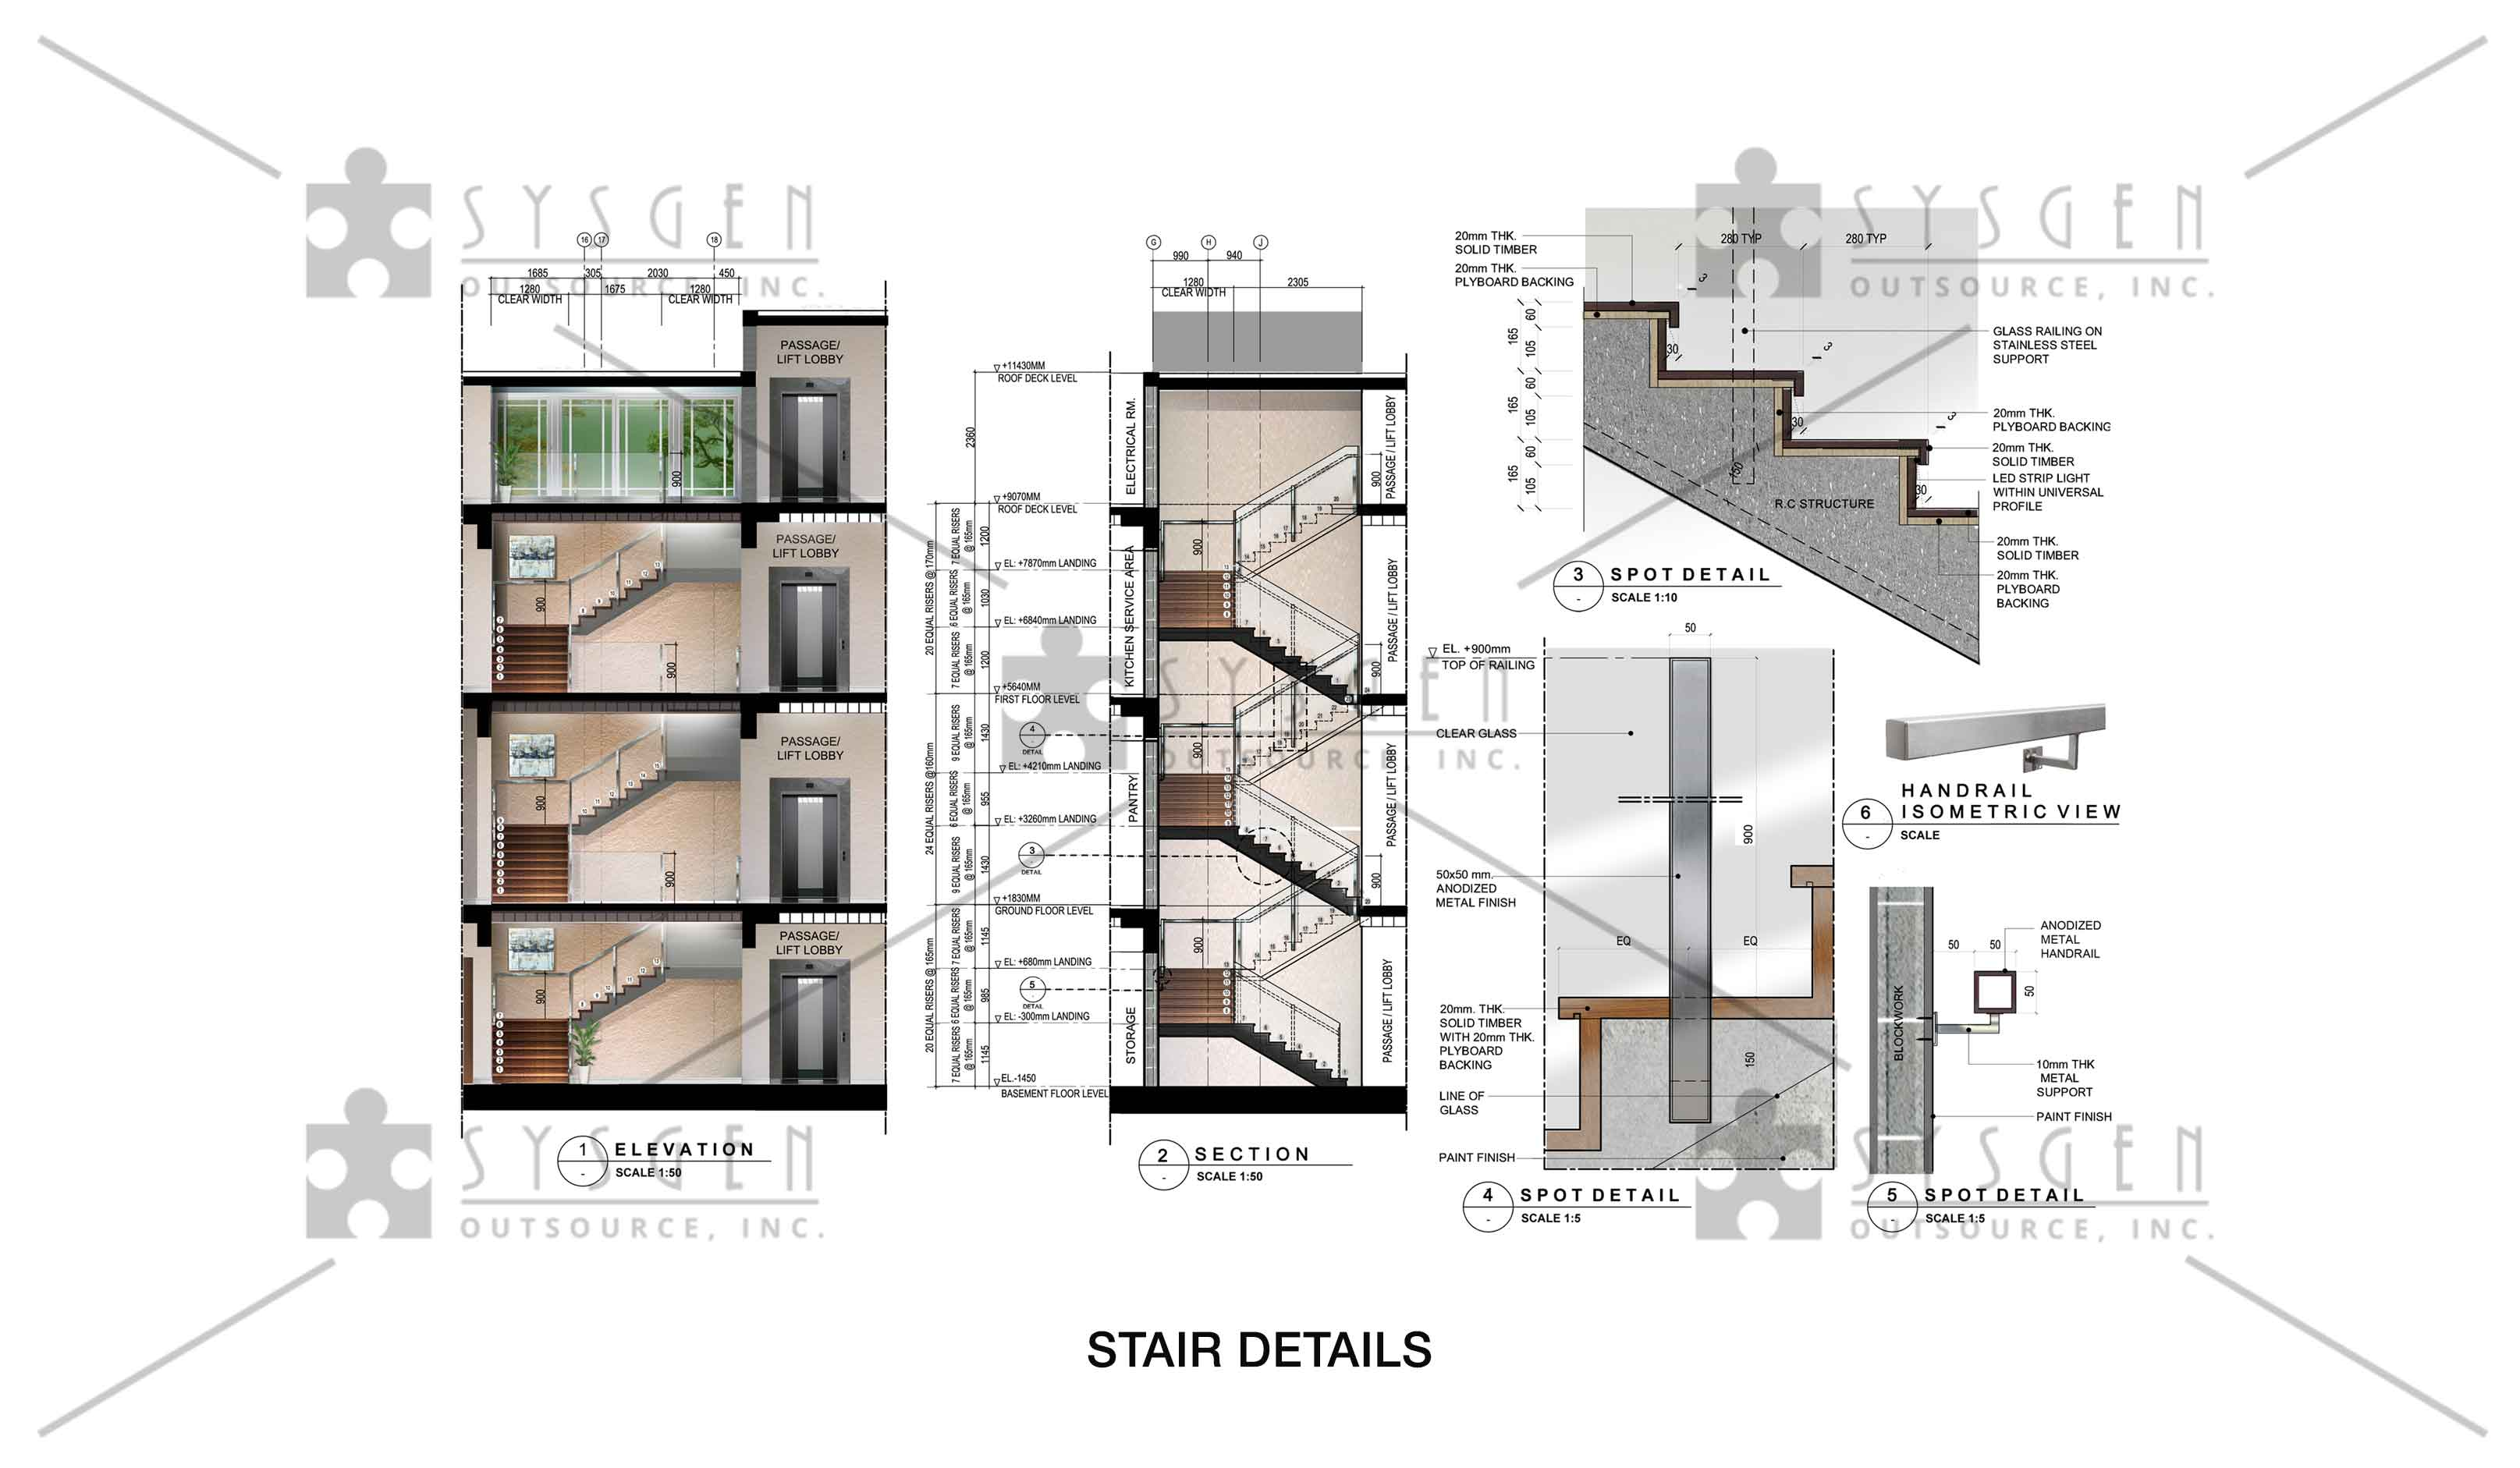 sysgen-outsource-cad-outsourcing-services-sketch-up-resi_villa-jj17